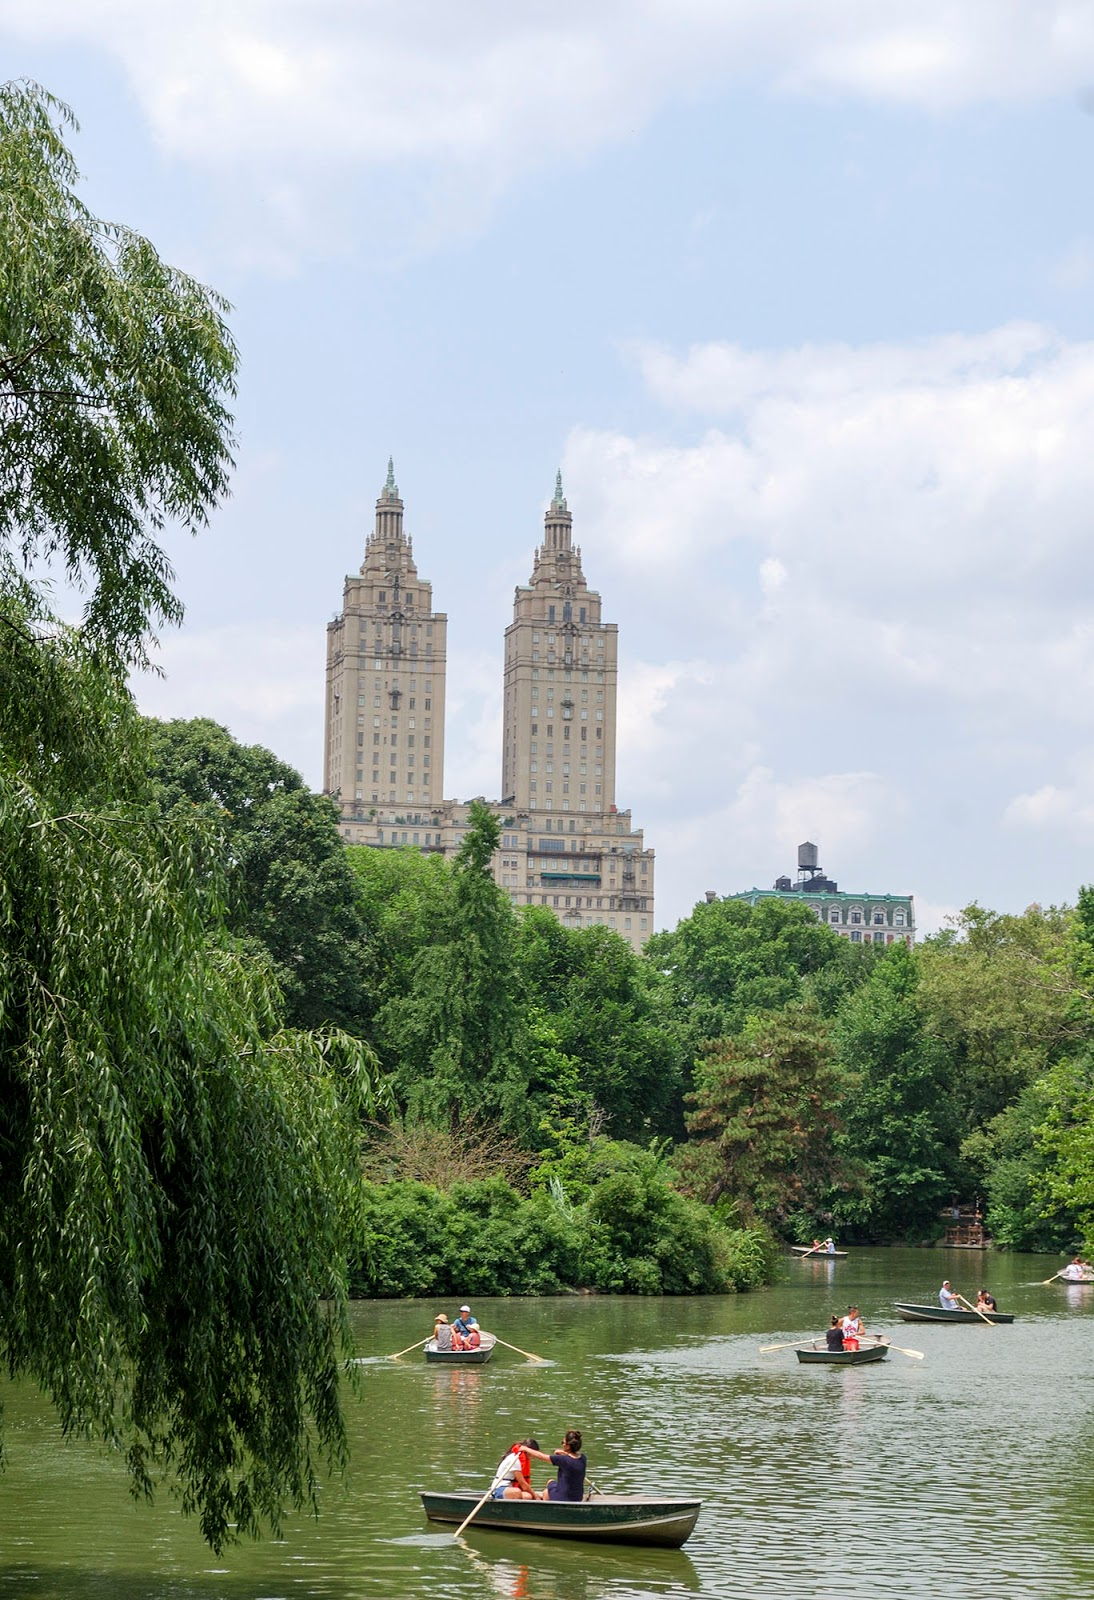 new york itinerary guide plan central park manhattan towers